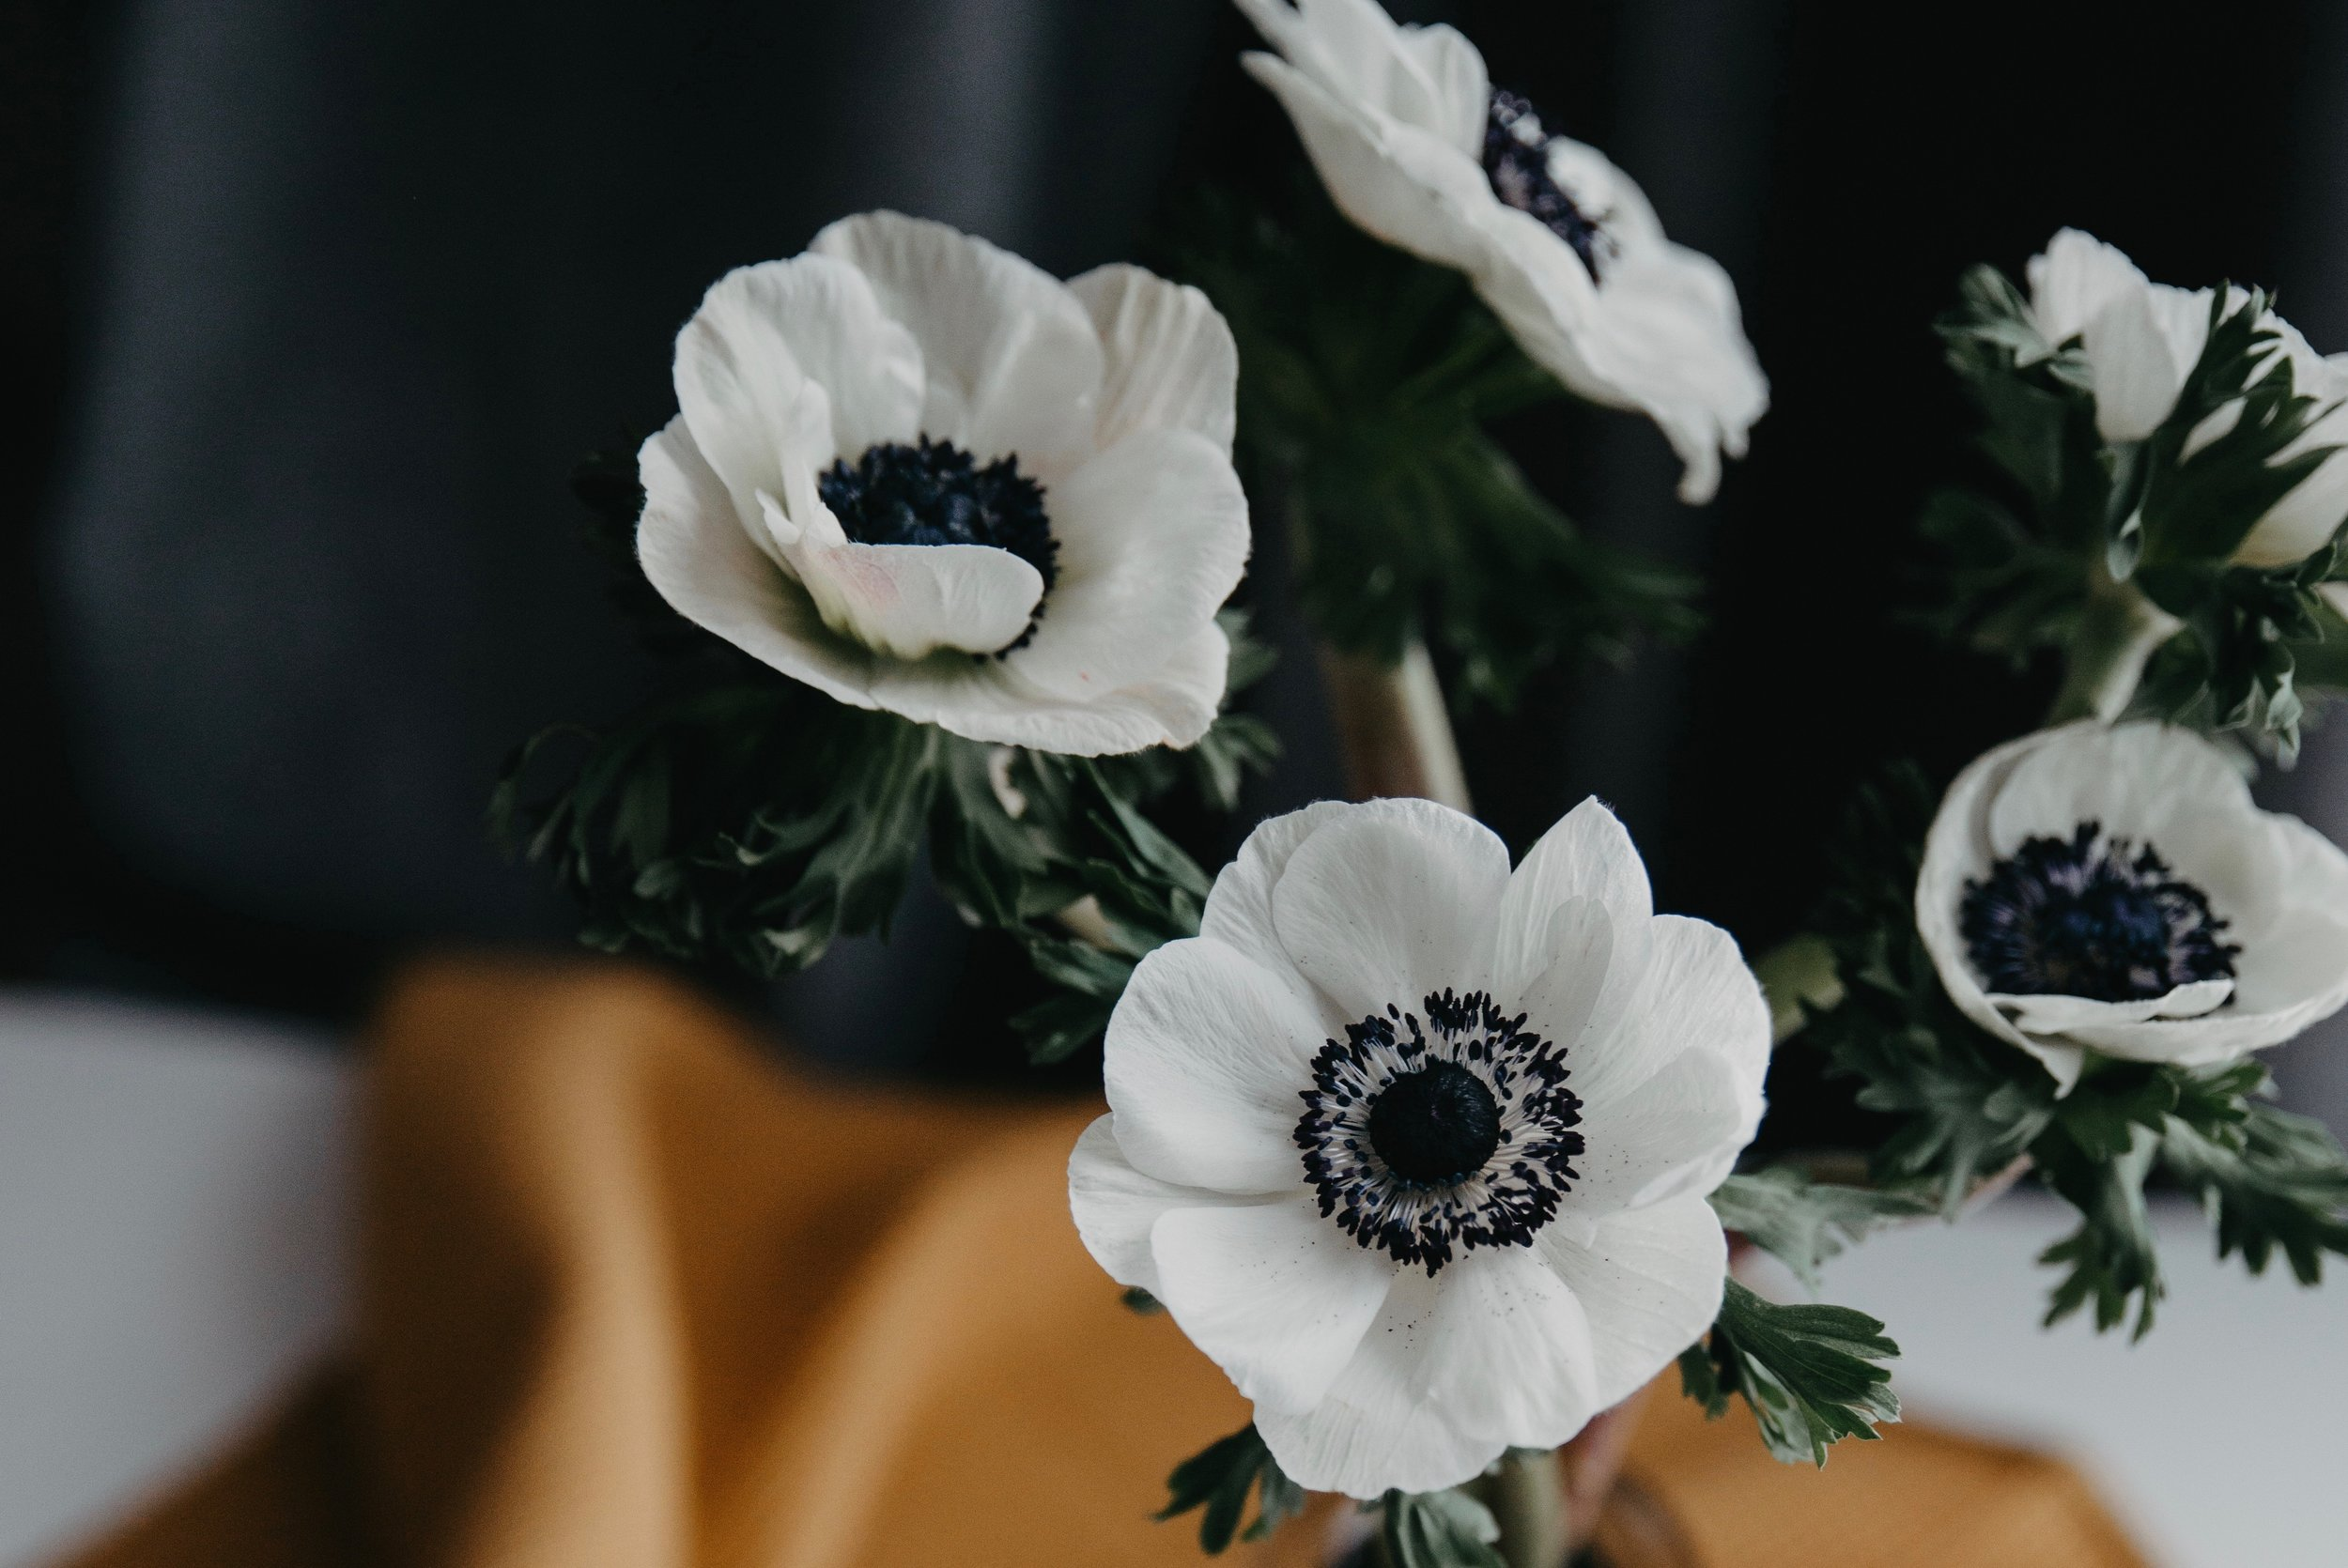 List of spring flowers anenome.jpg